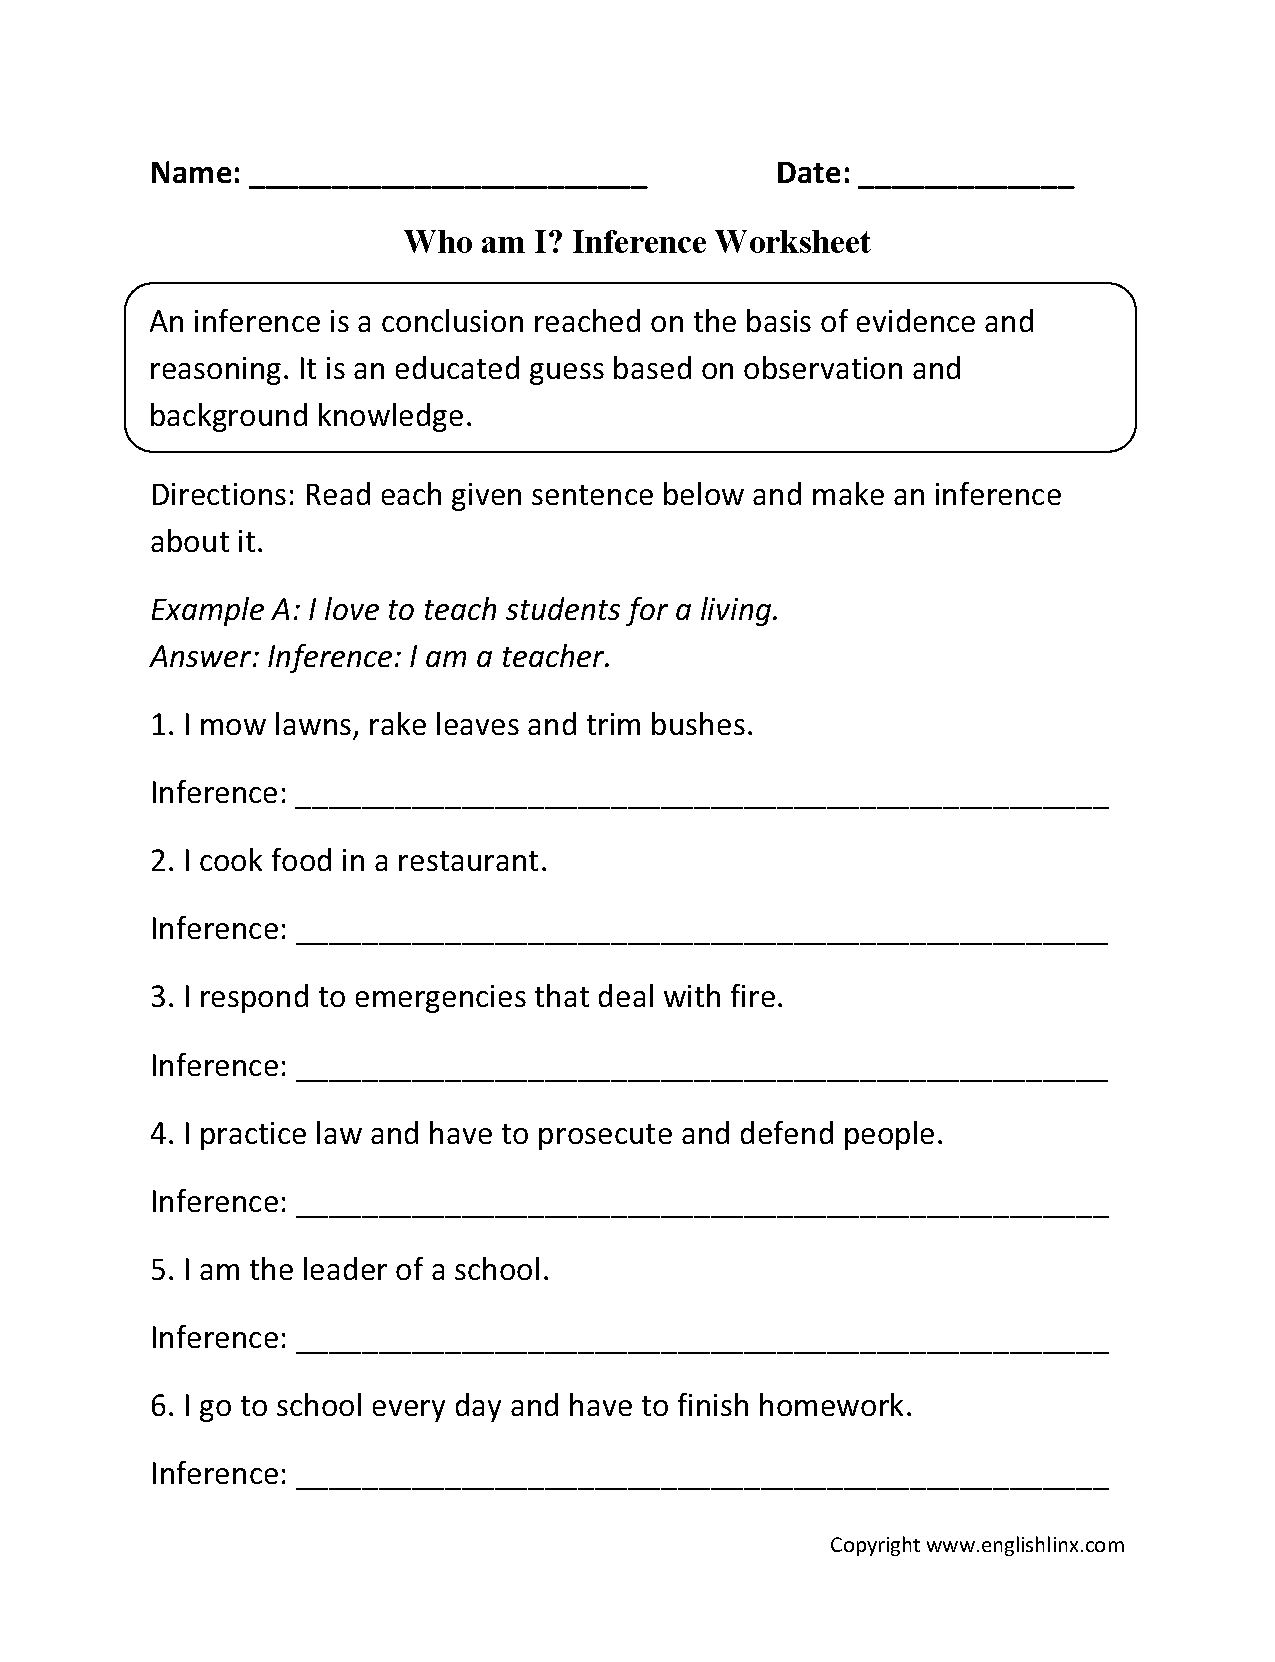 Reading Worksheets   Inference Worksheets   Inferring lessons [ 1662 x 1275 Pixel ]